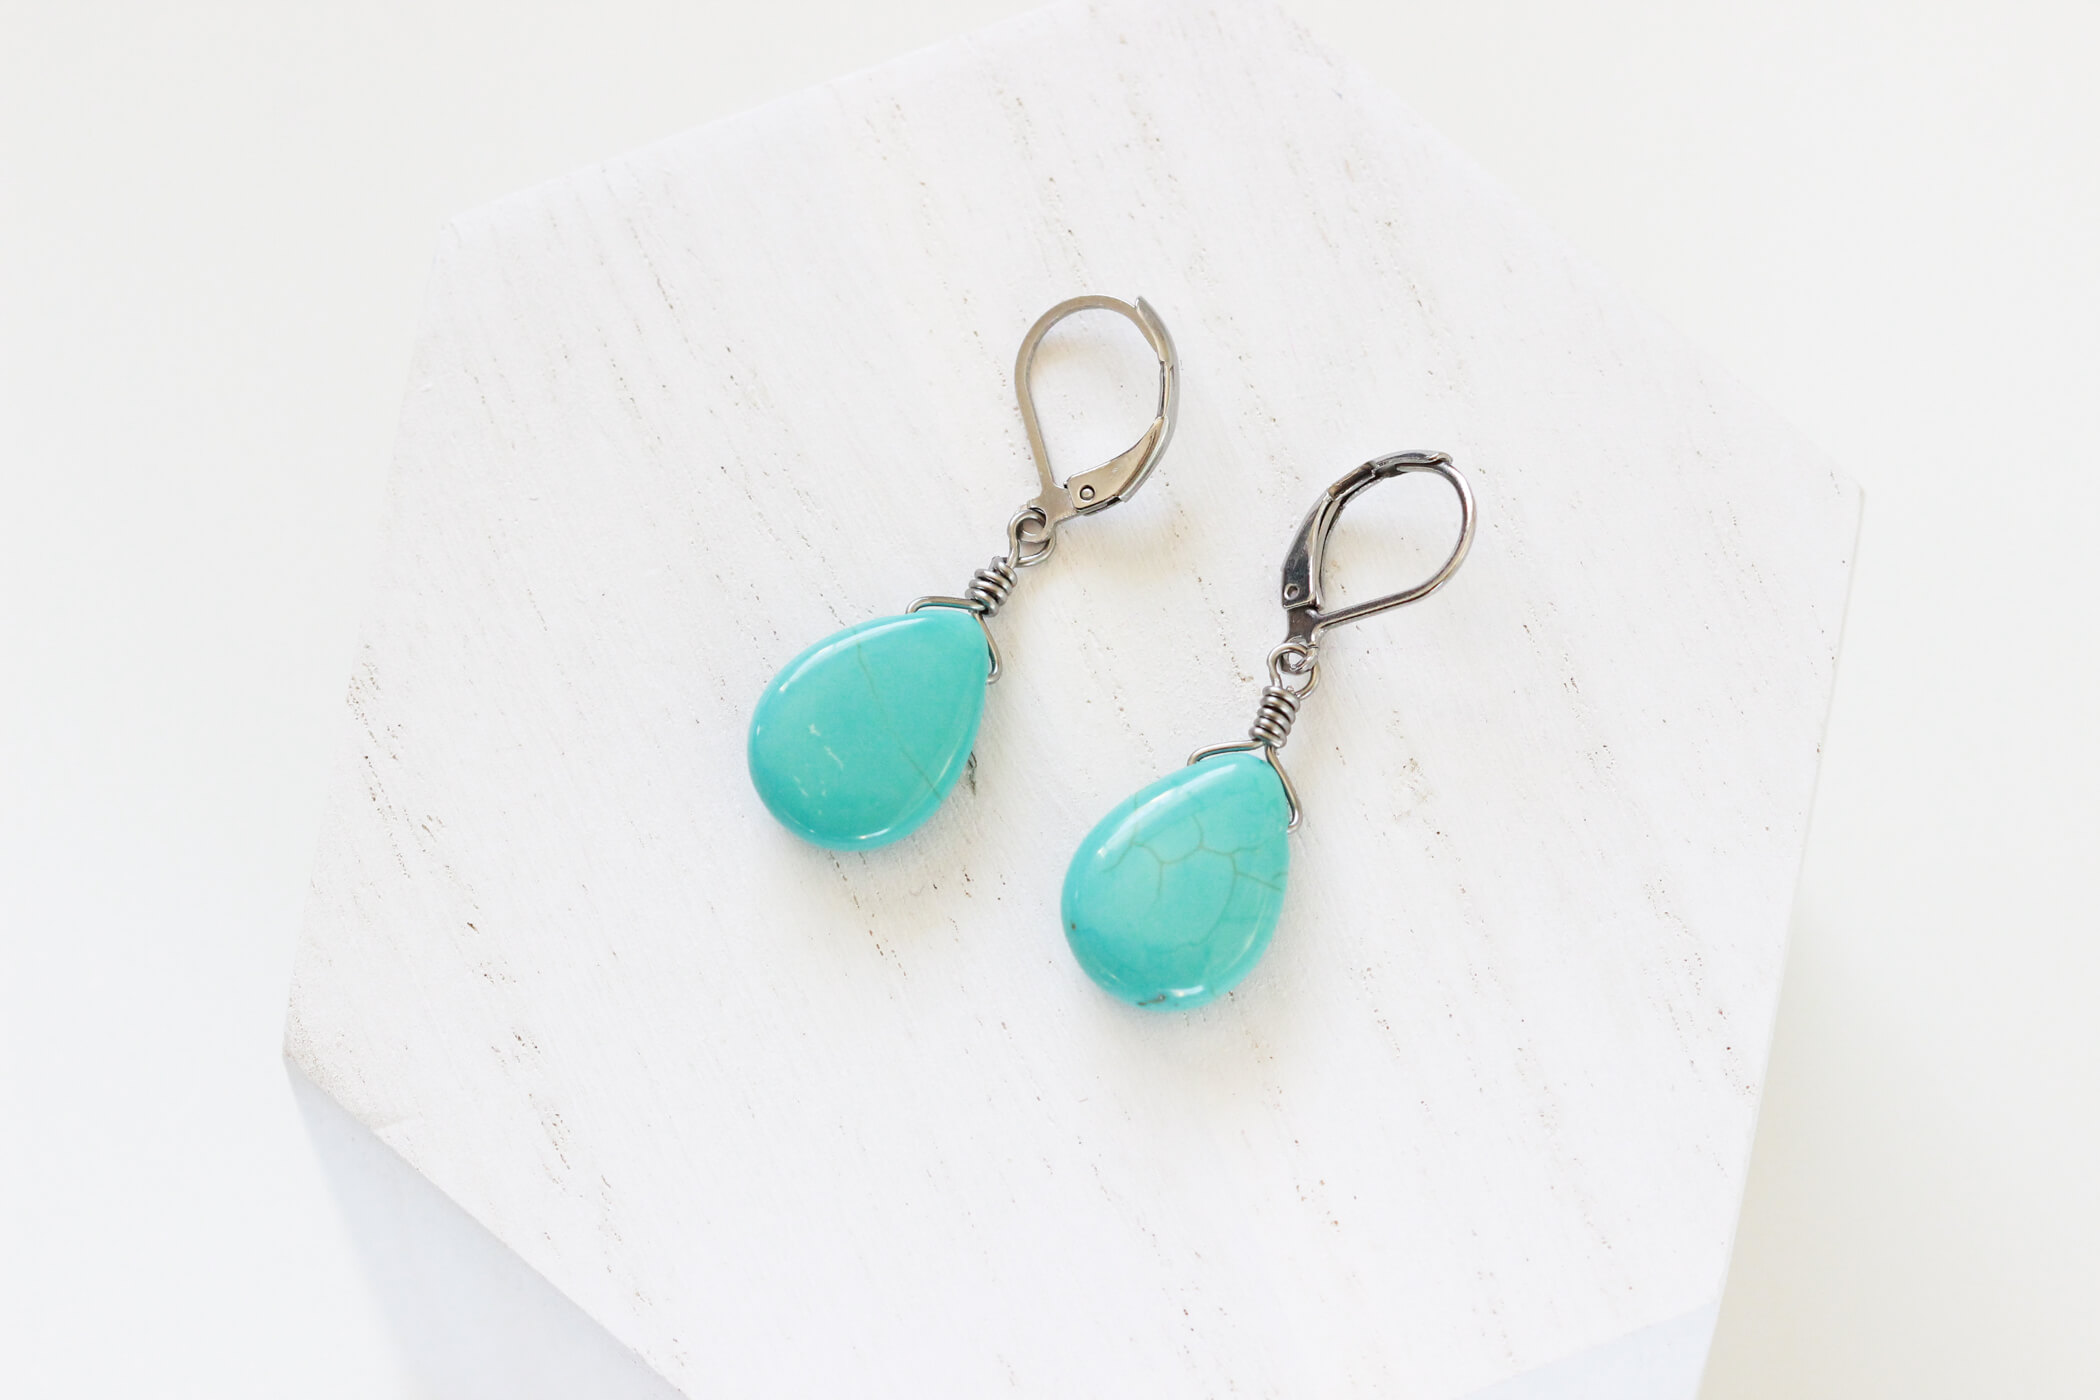 Turquoise Drop Earrings – Handmade Designer Jewelry by Kaleidoscopes And Polka Dots